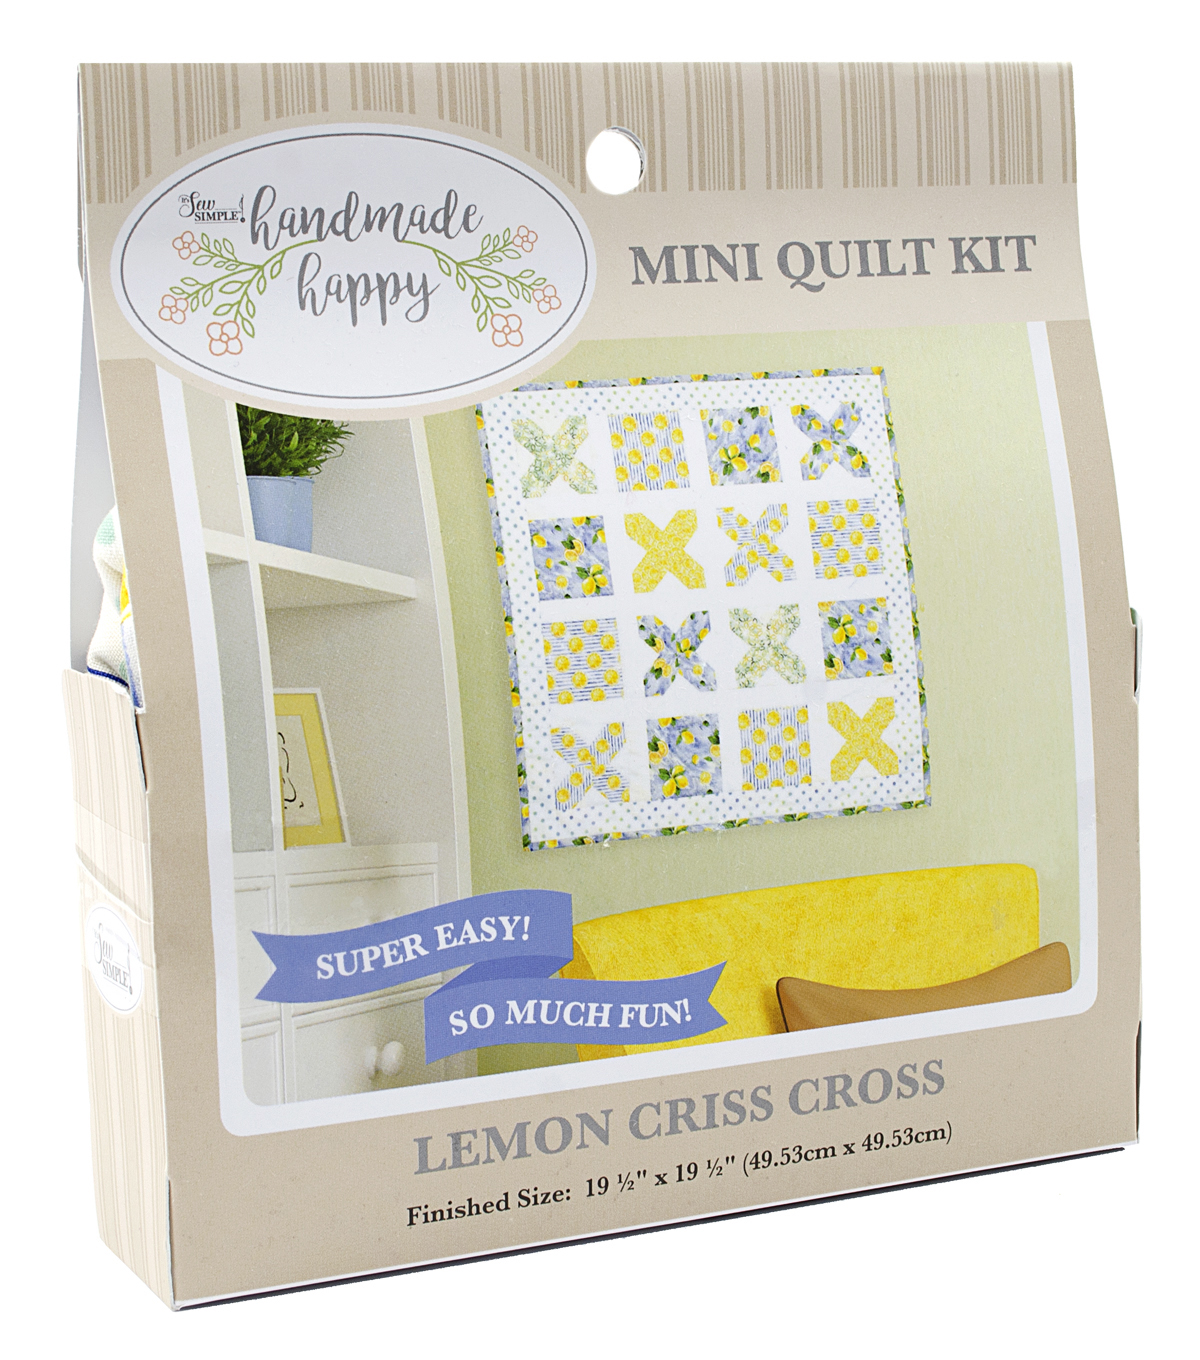 Sew Simple Handmade Happy Mini Quilt Kit-Lemons